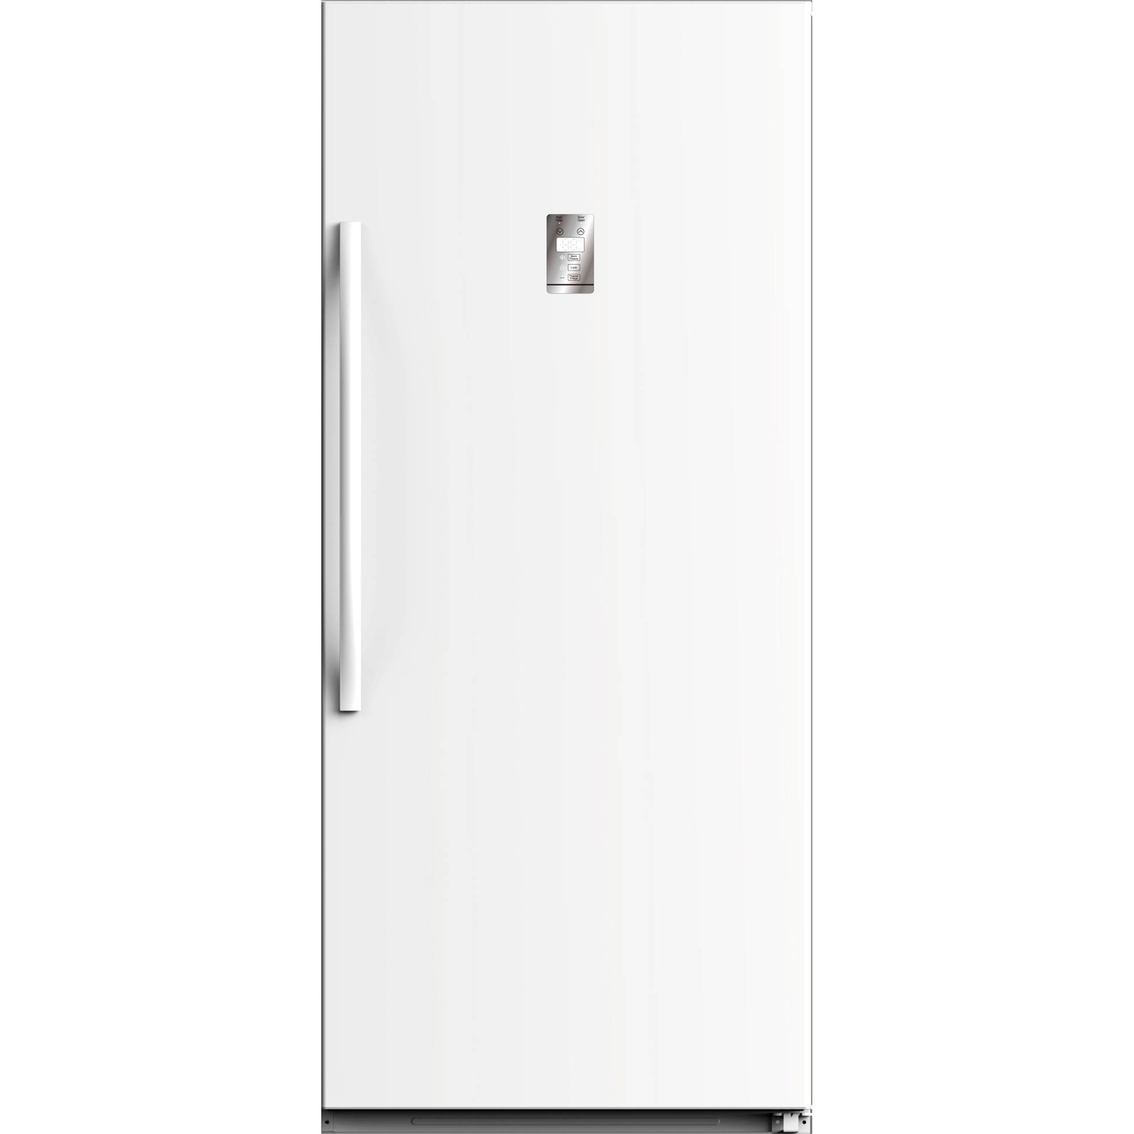 Small Stand Up Freezer Midea 17 Cu Ft Upright Freezer Freezers Home Appliances